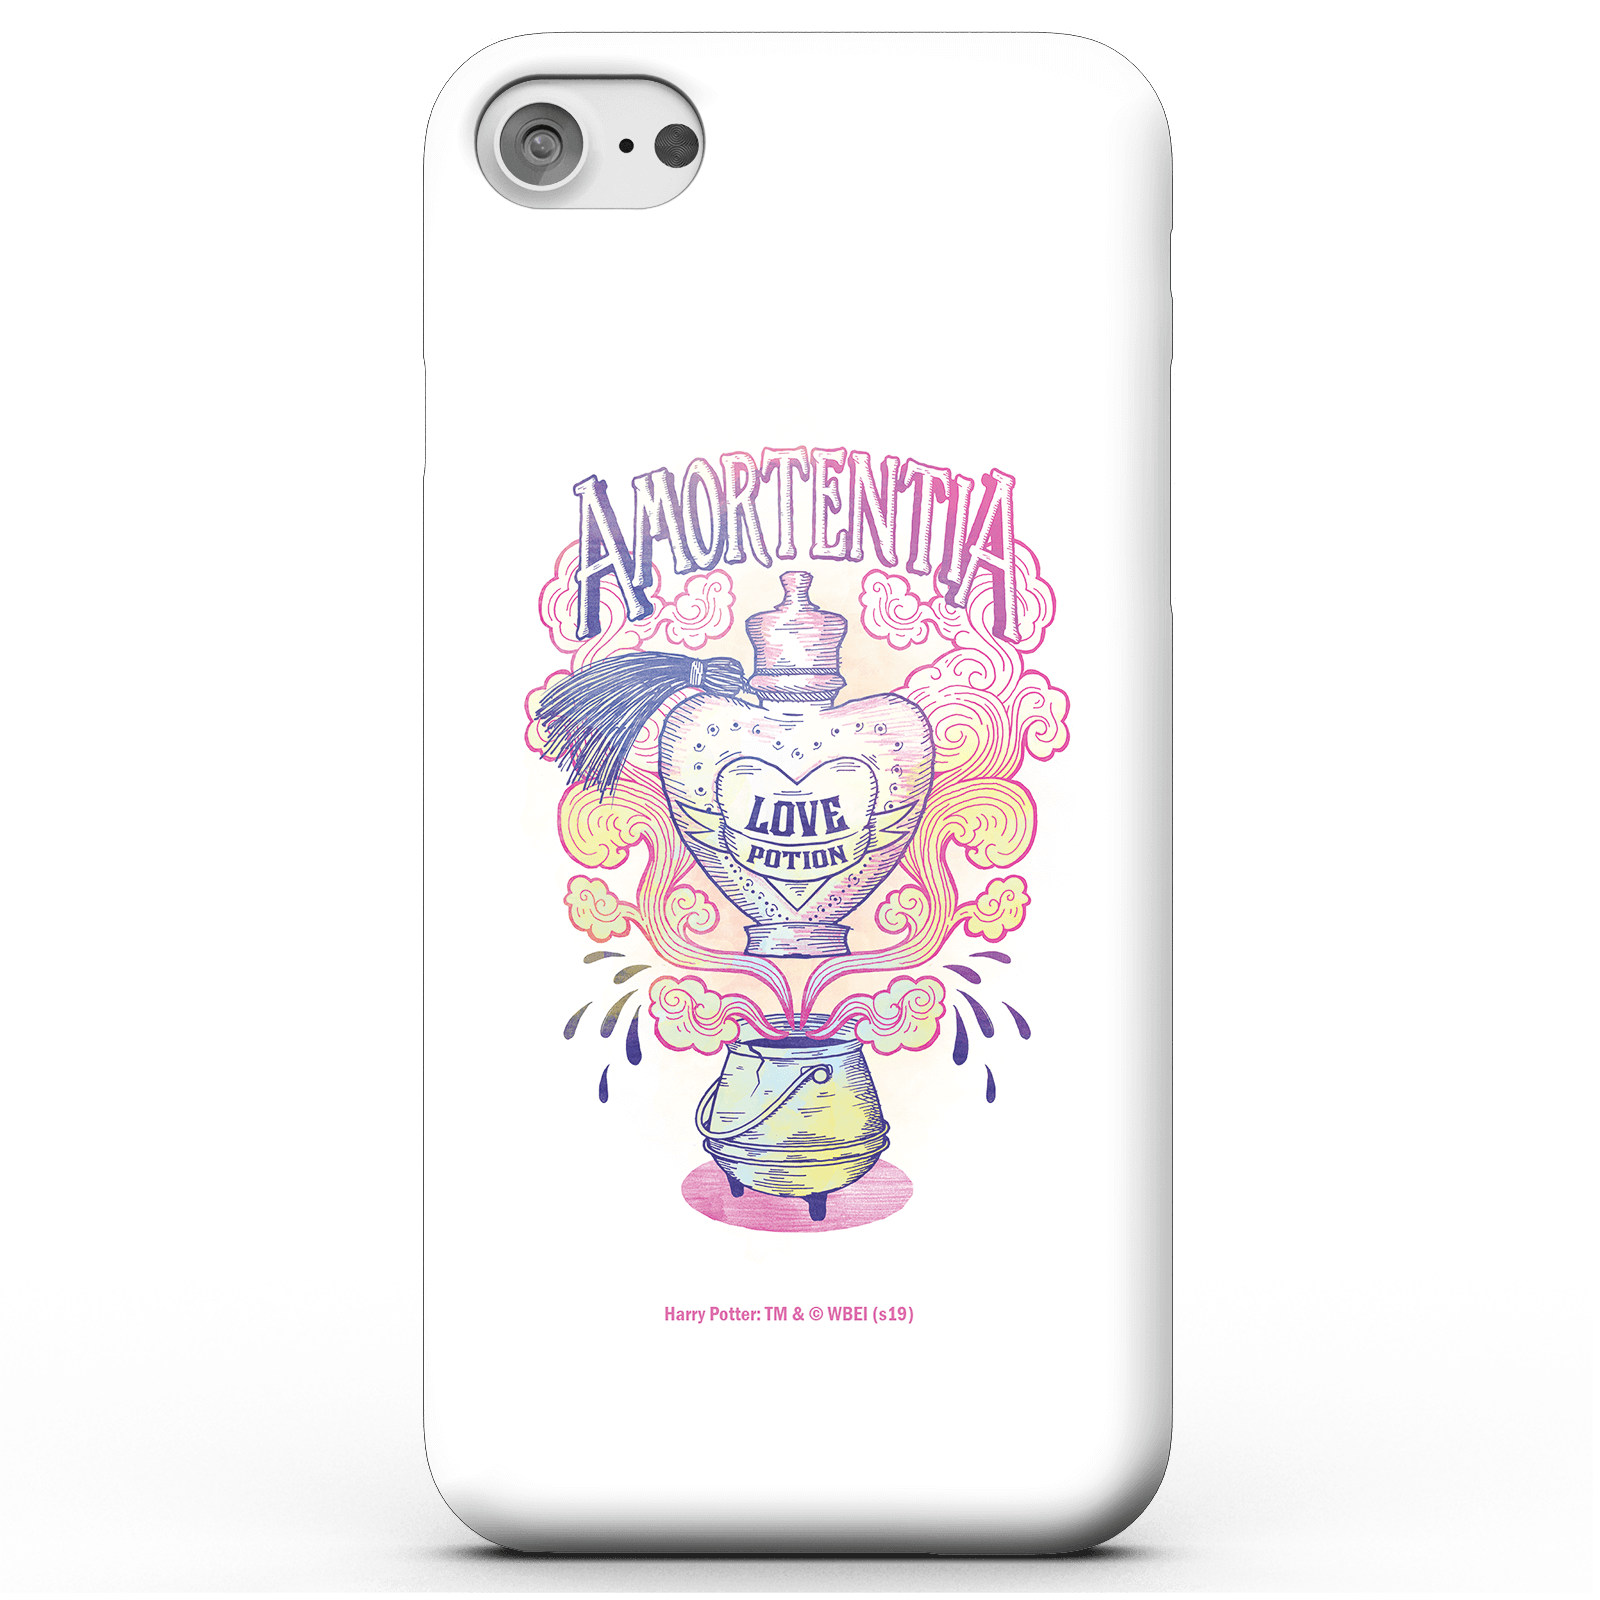 Funda Móvil Harry Potter Amorentia Love Potion para iPhone y Android - iPhone 7 Plus - Carcasa doble capa - Mate de Harry Potter